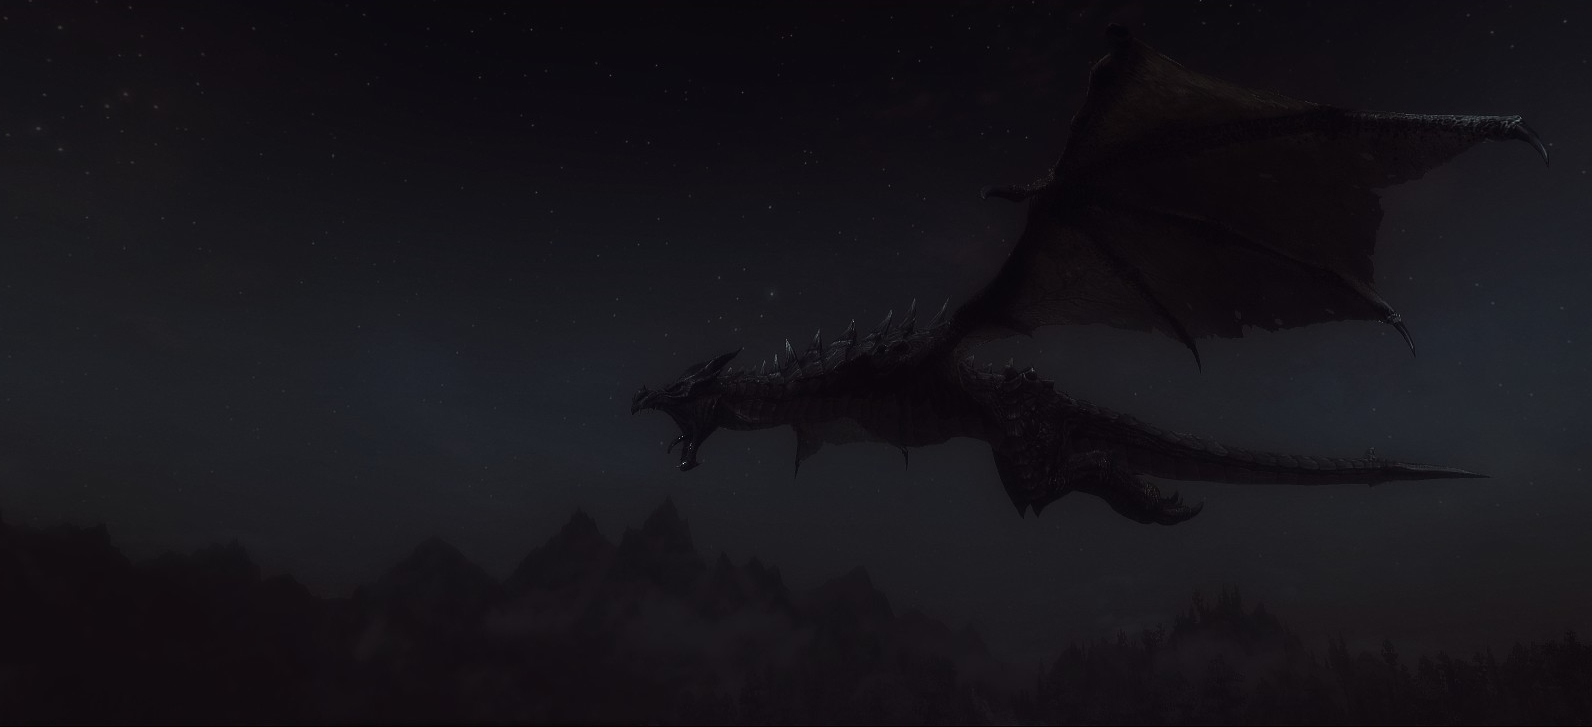 A dragon in the night